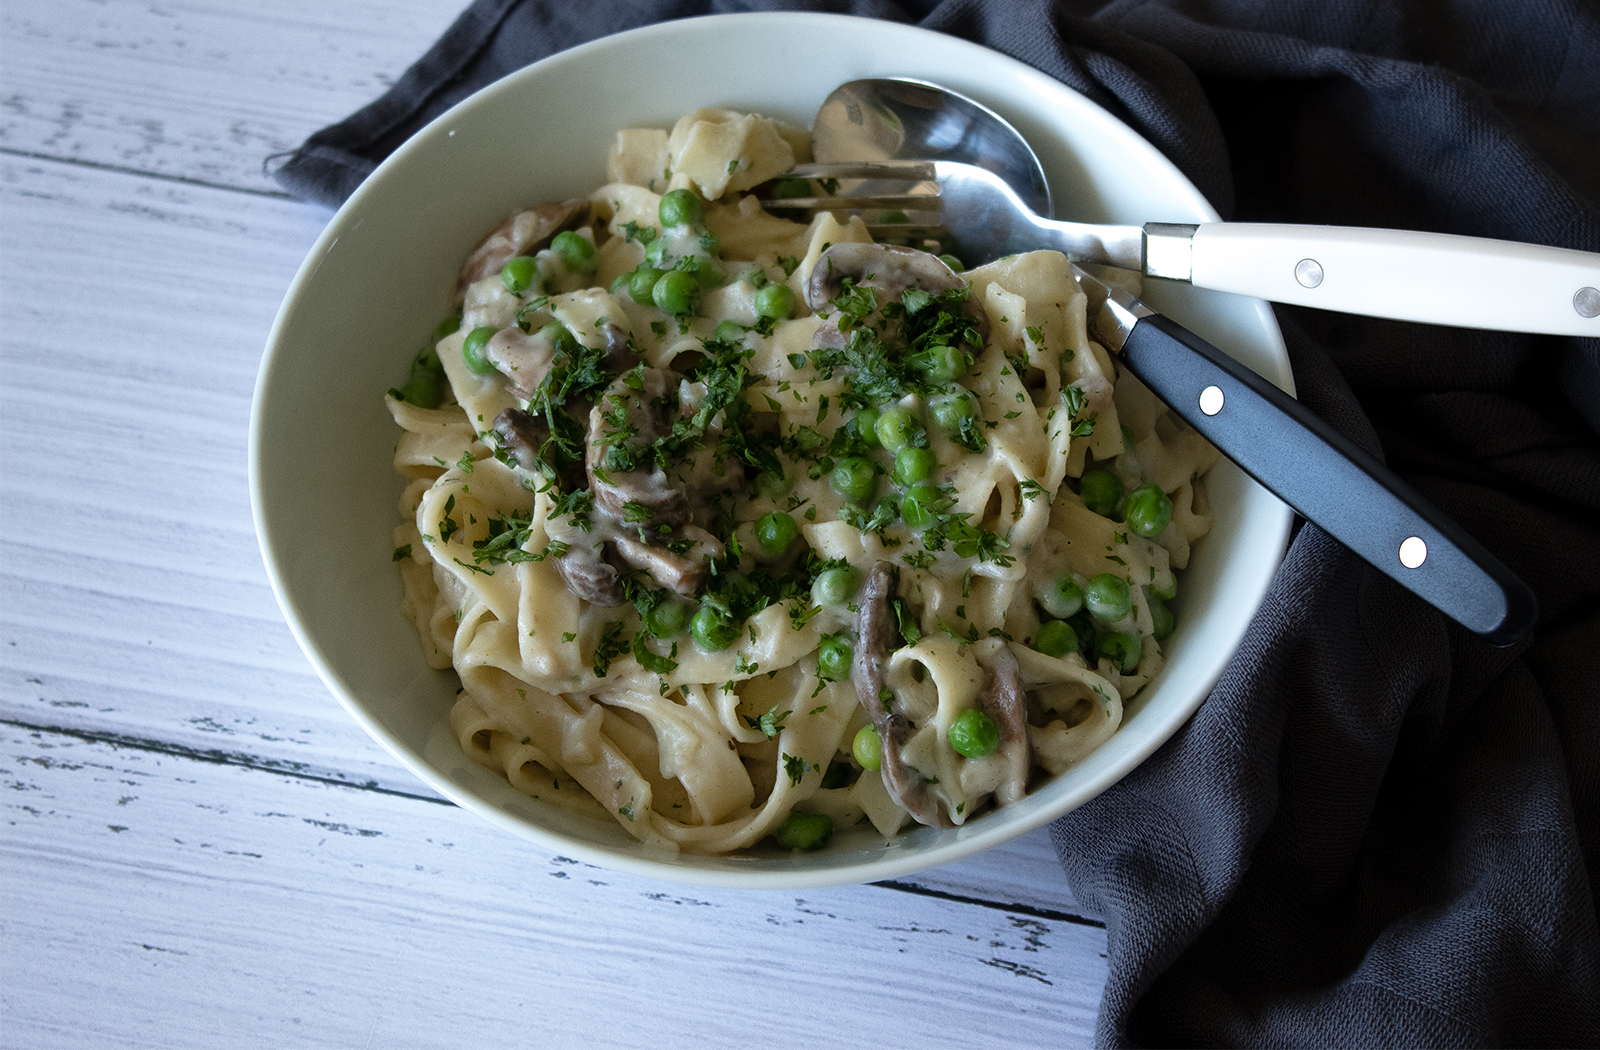 15 Minute Vegan Creamy Mushroom Pasta Eating Vegan With Me